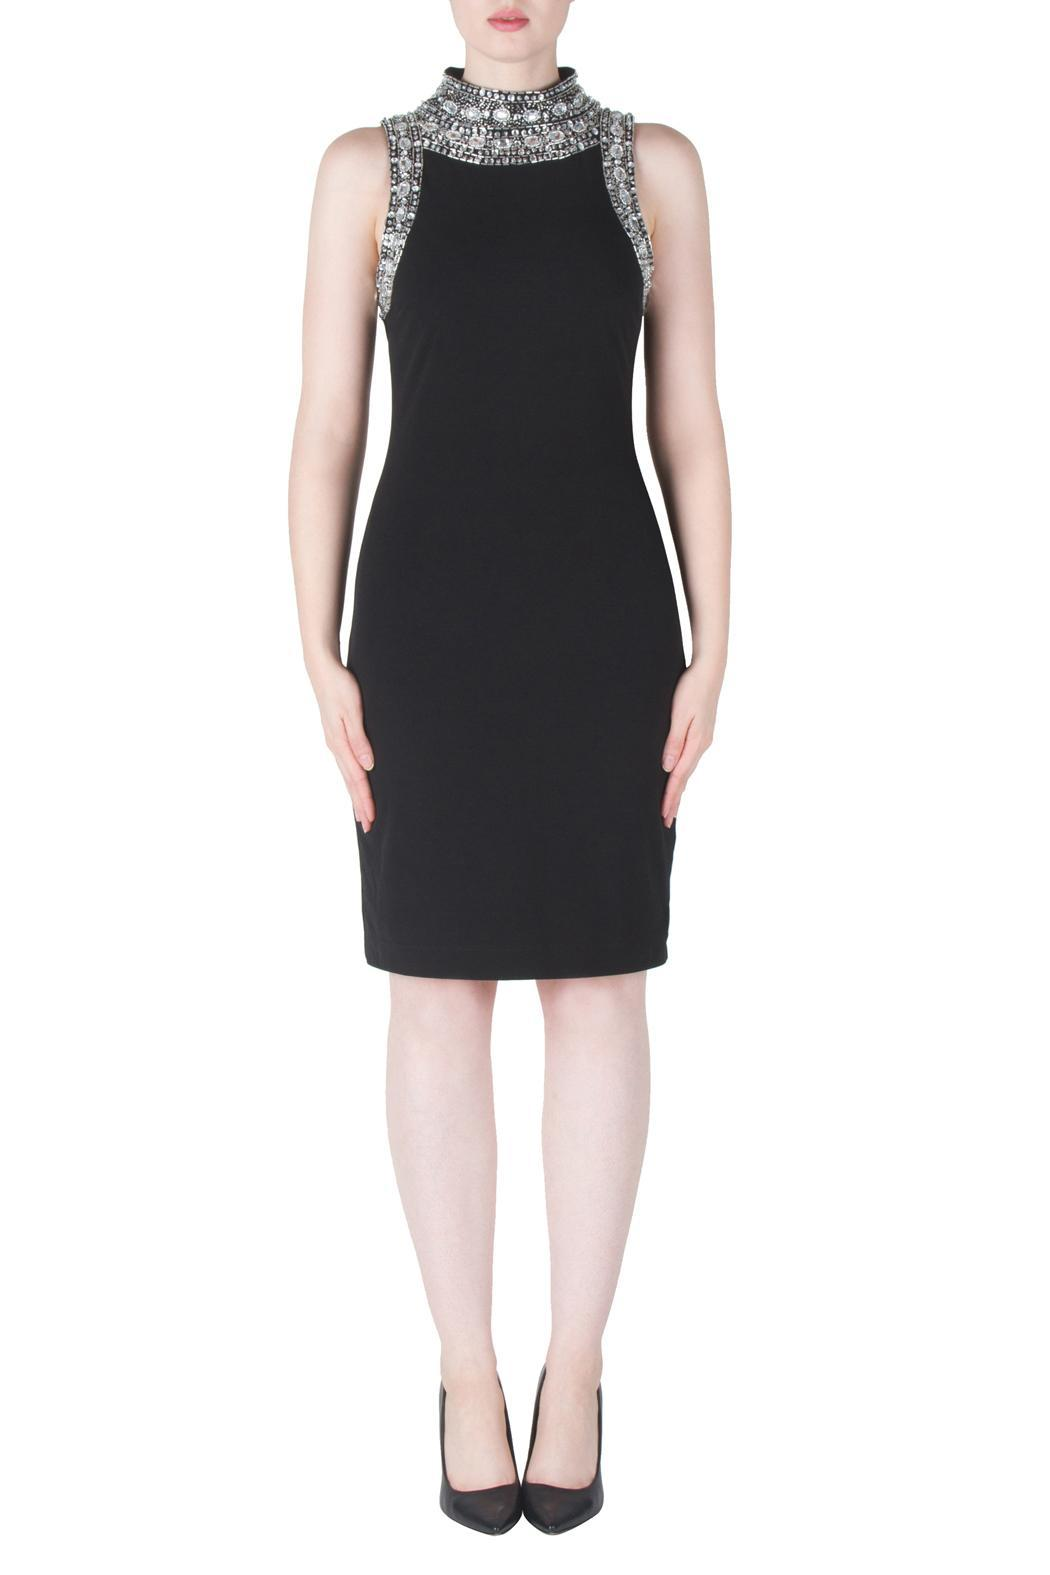 Joseph Ribkoff Crystal Neck Dress From New Jersey By